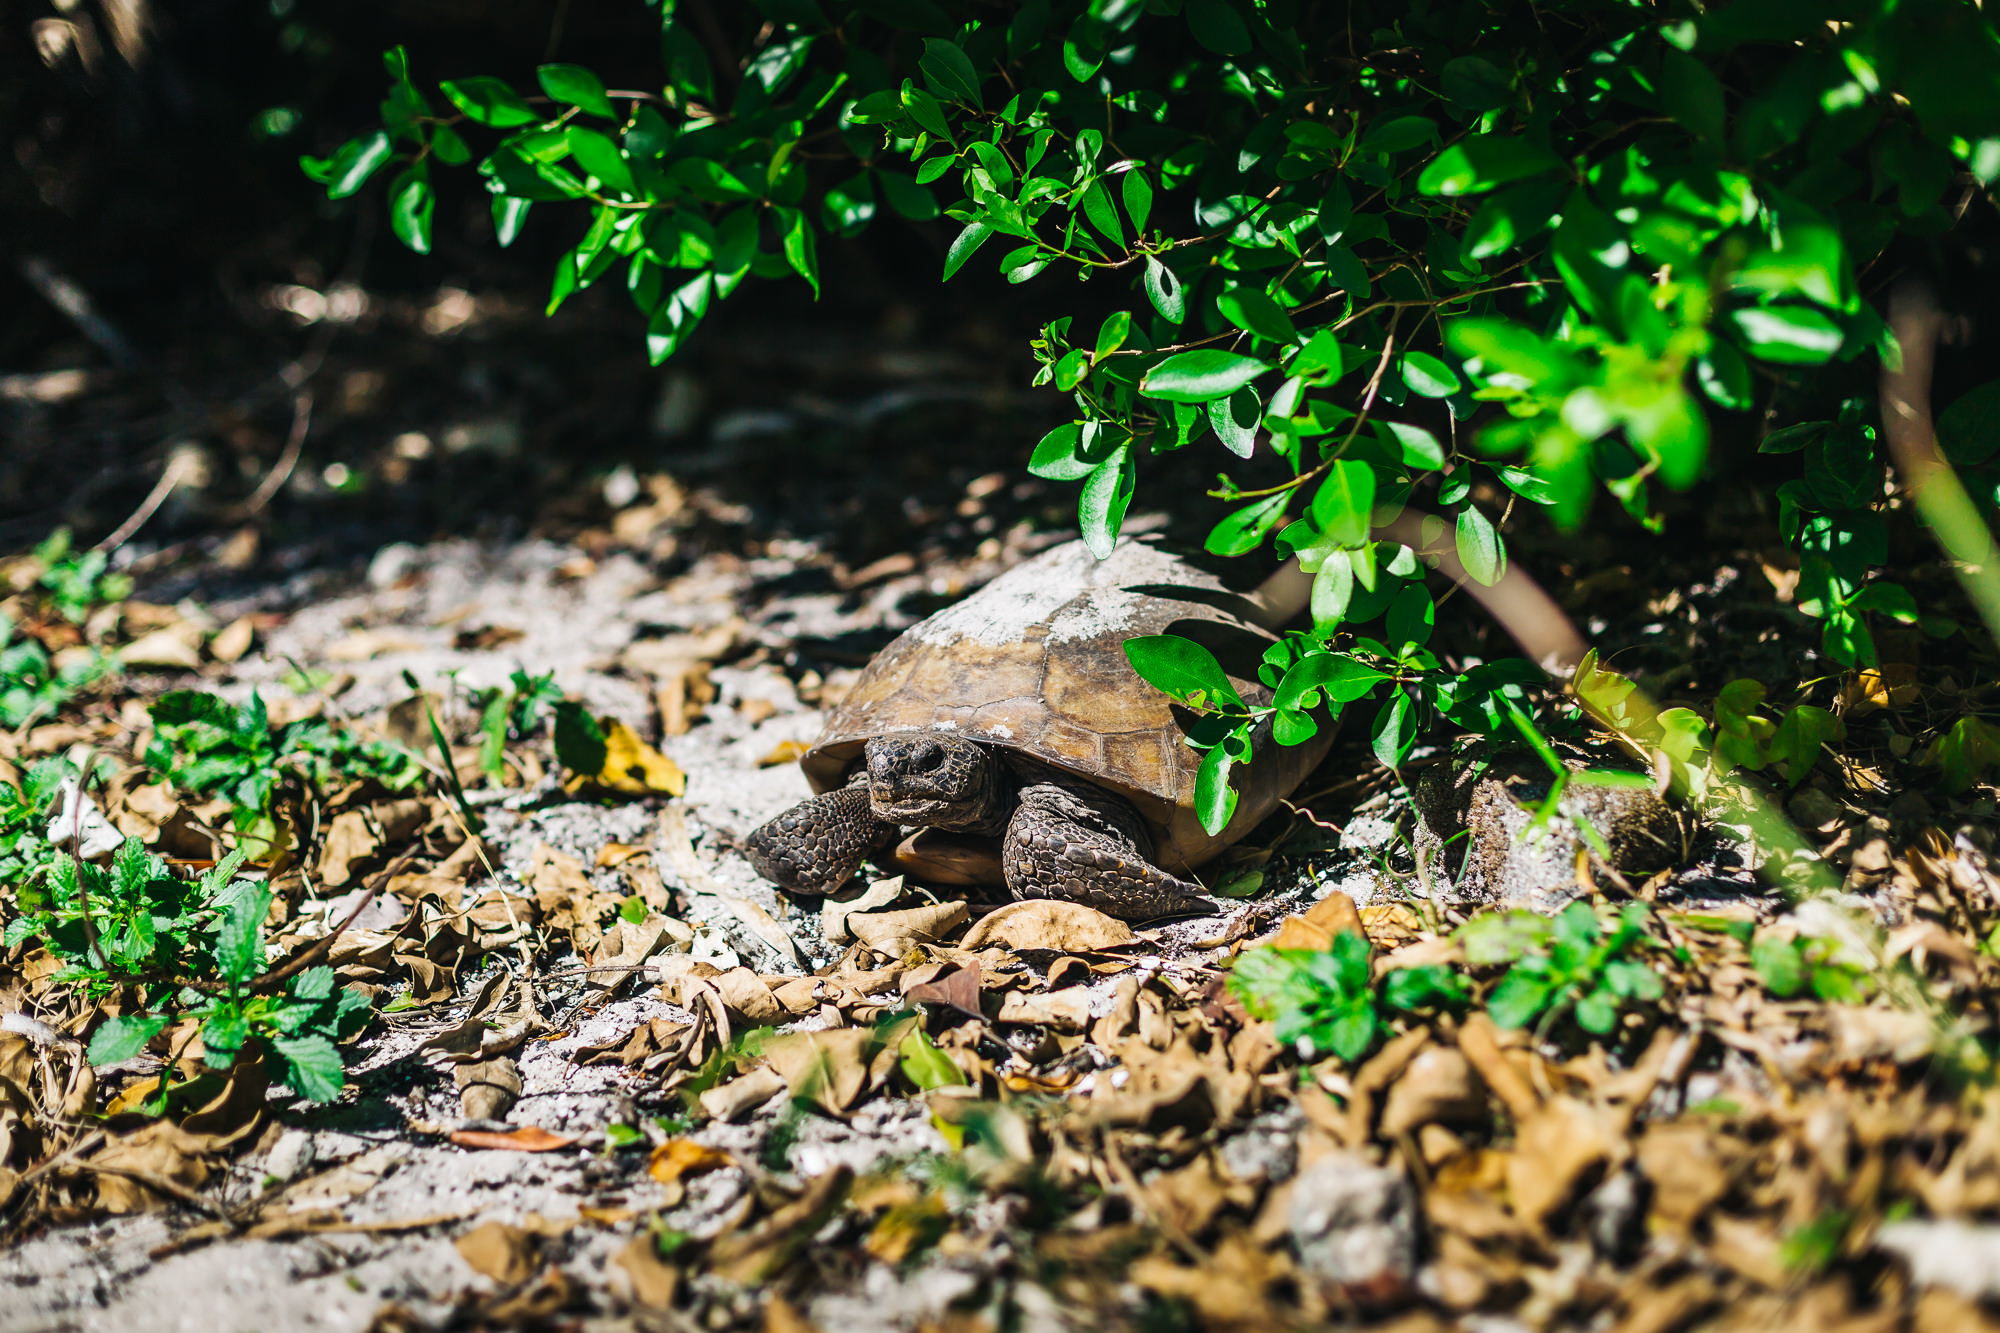 The Egmont Key gopher tortoises are commonly found roaming the brick roads and trails of the island year-round